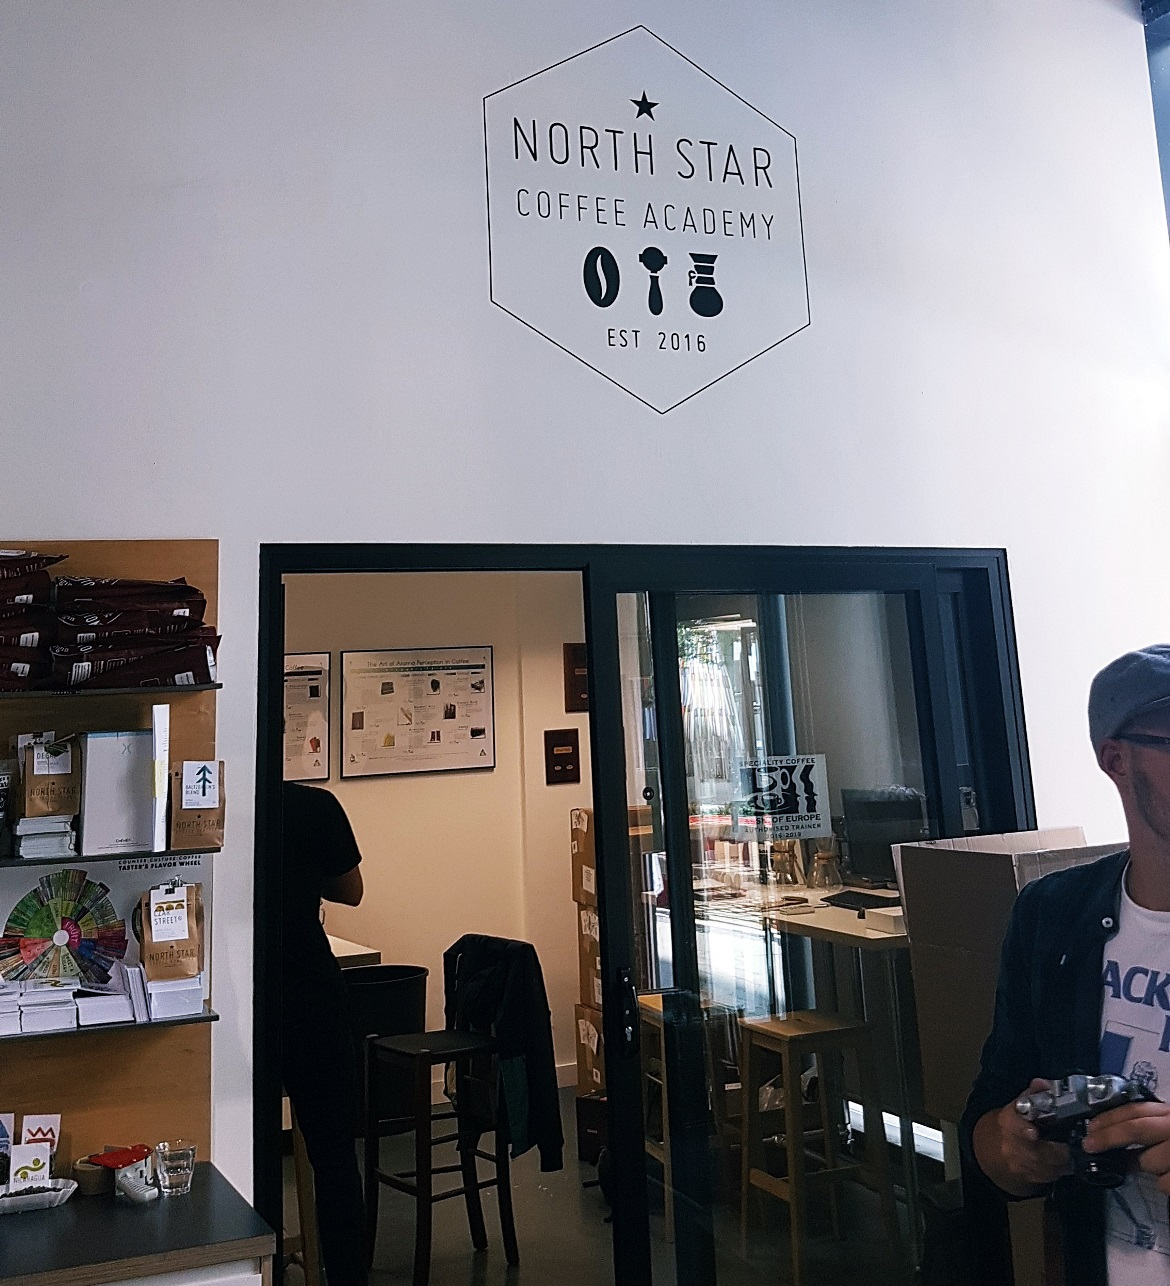 Entrance to North Star Coffee Academy - Review of North Star Coffee Shop by BeckyBecky Blogs